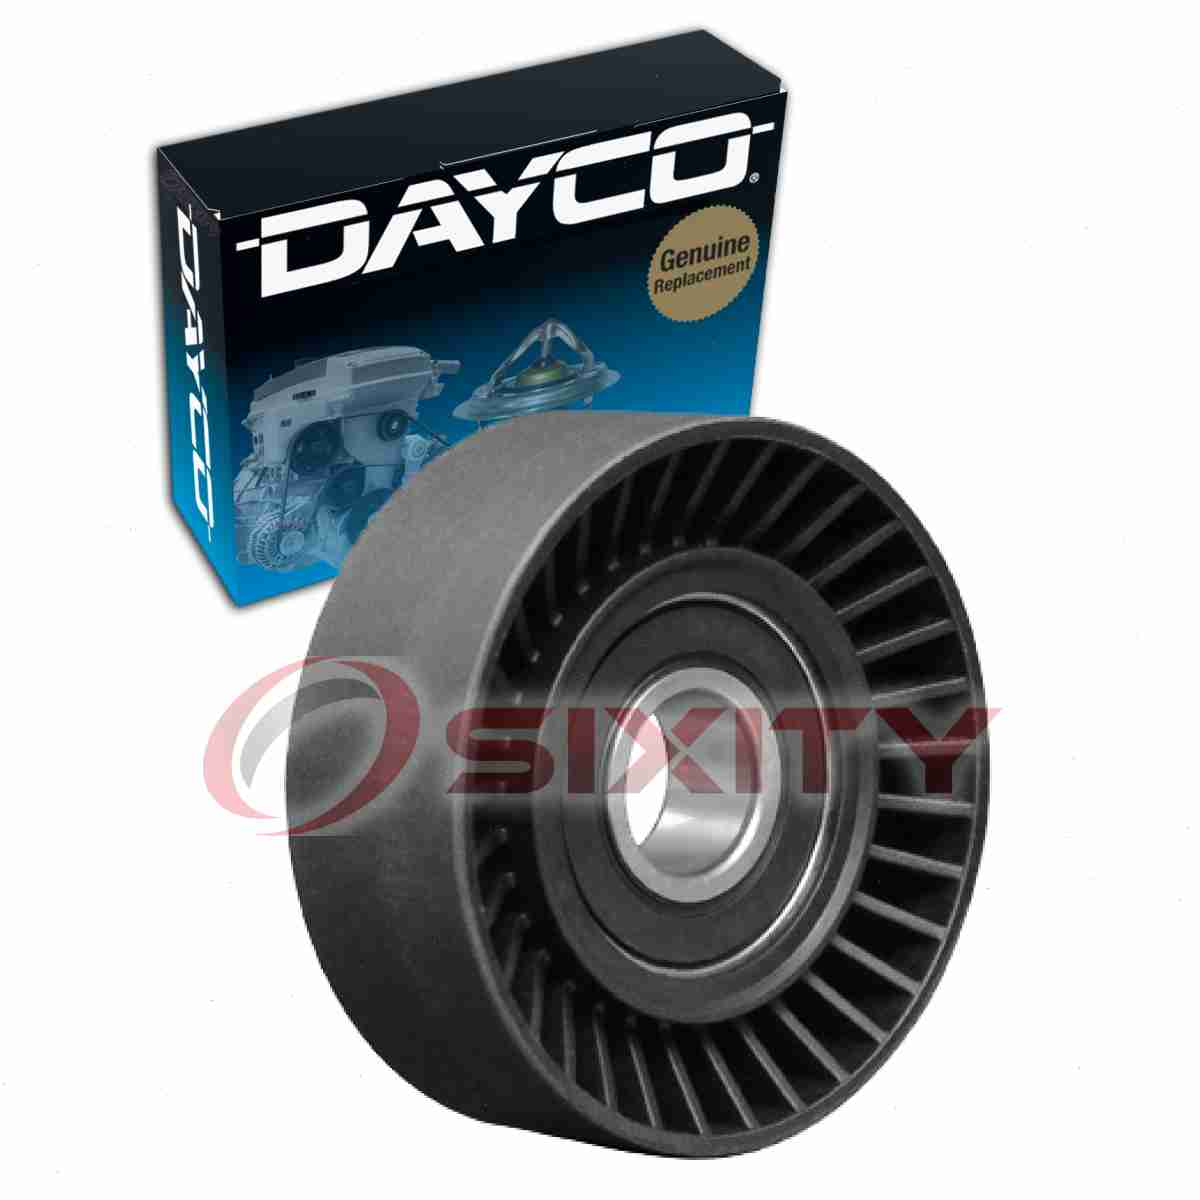 Dayco 89140 Drive Belt Idler Pulley for 231140 36181 GSP89004 MD310150 wr